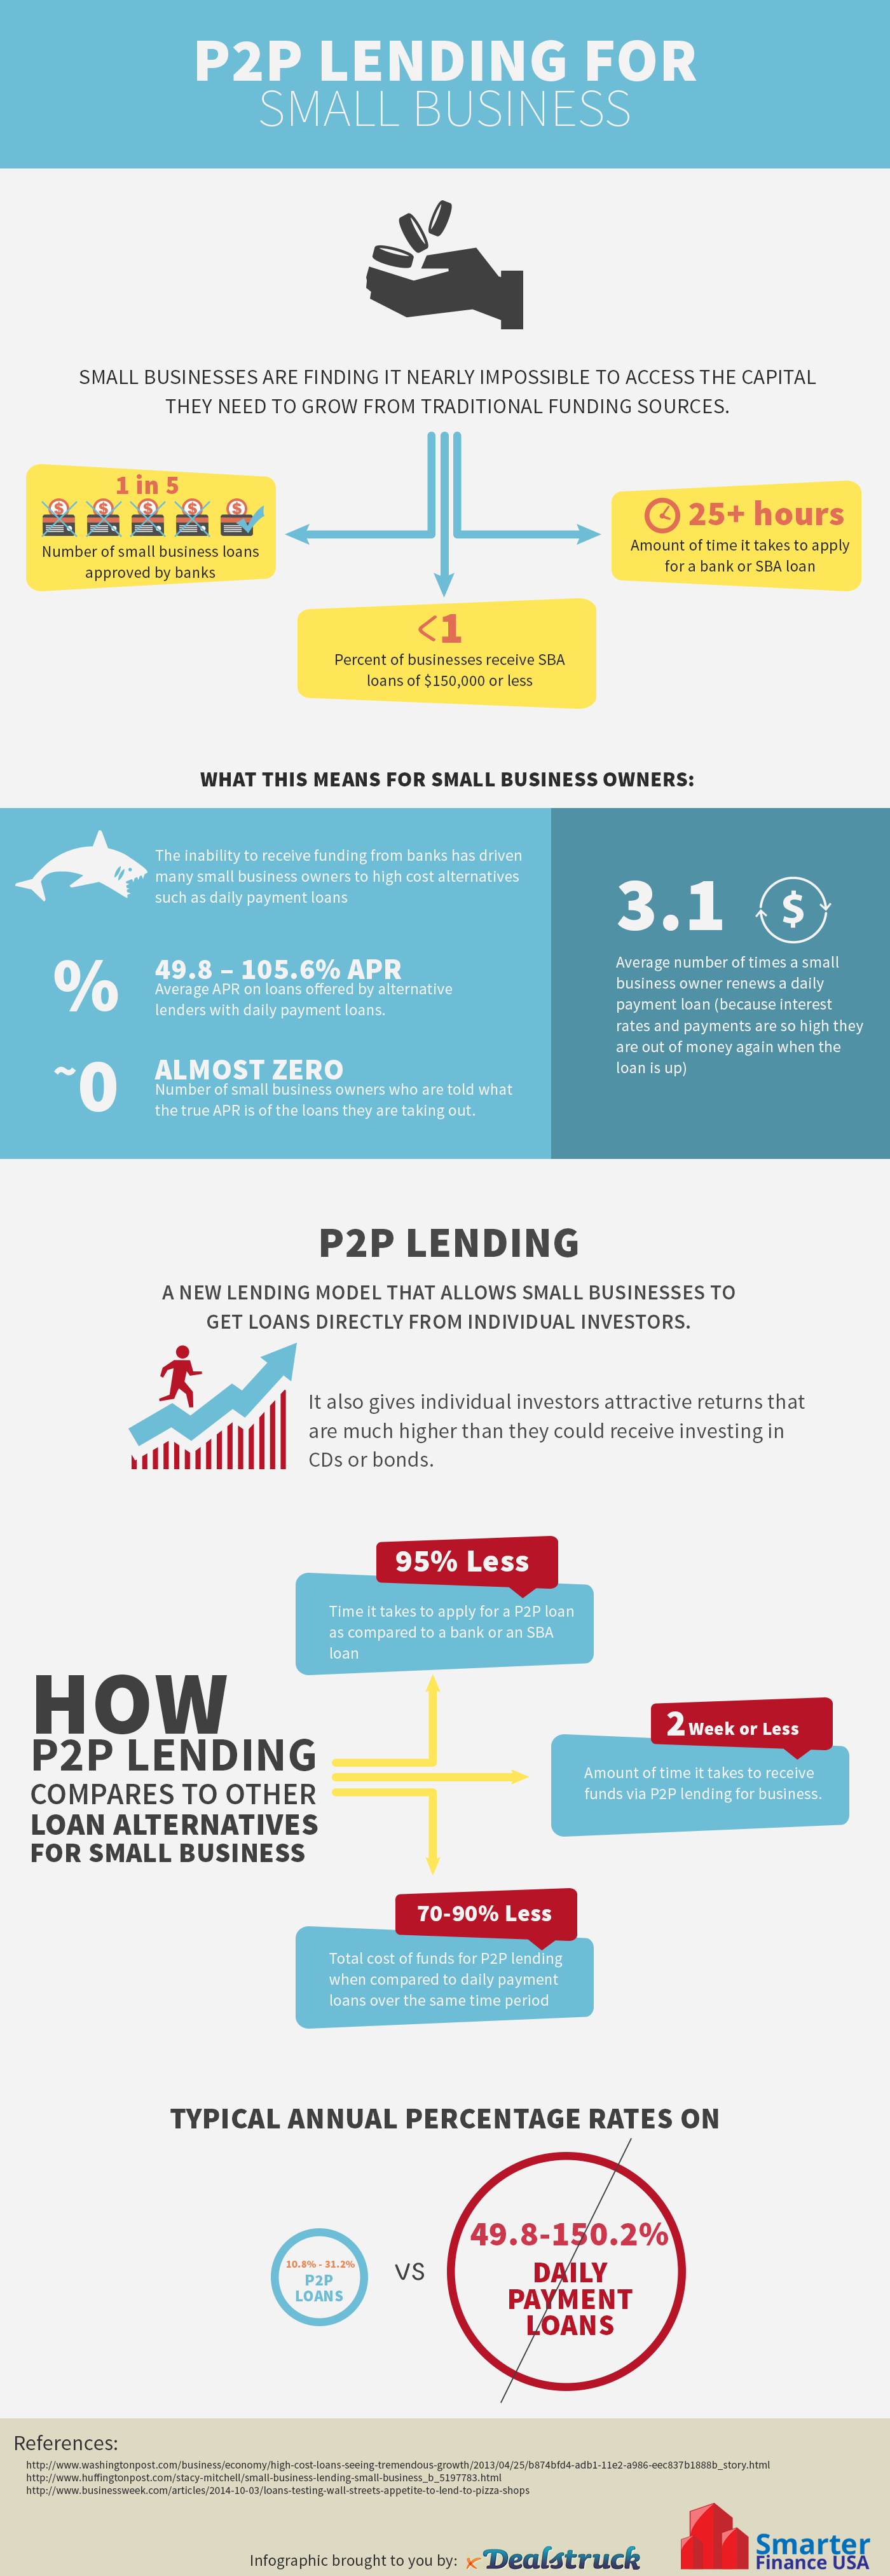 P2p-loans-small-business-infographic